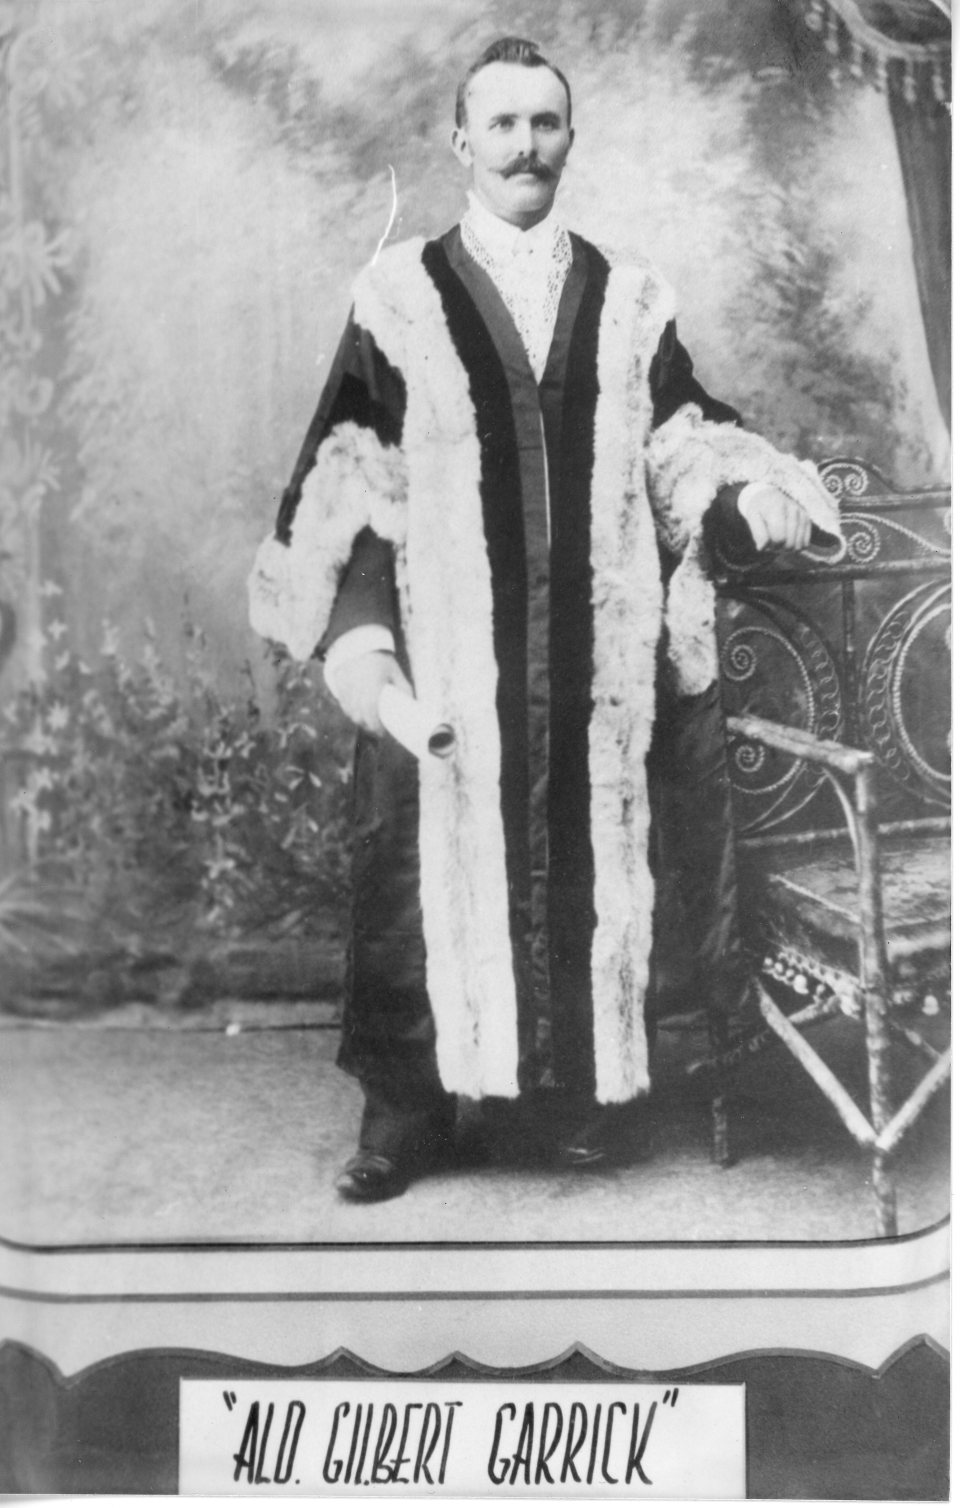 no-4-28-gilbert-garrick-mayor-at-the-time-gympie-proclaimed-a-city-1905-1904-05-p23-people-individuals